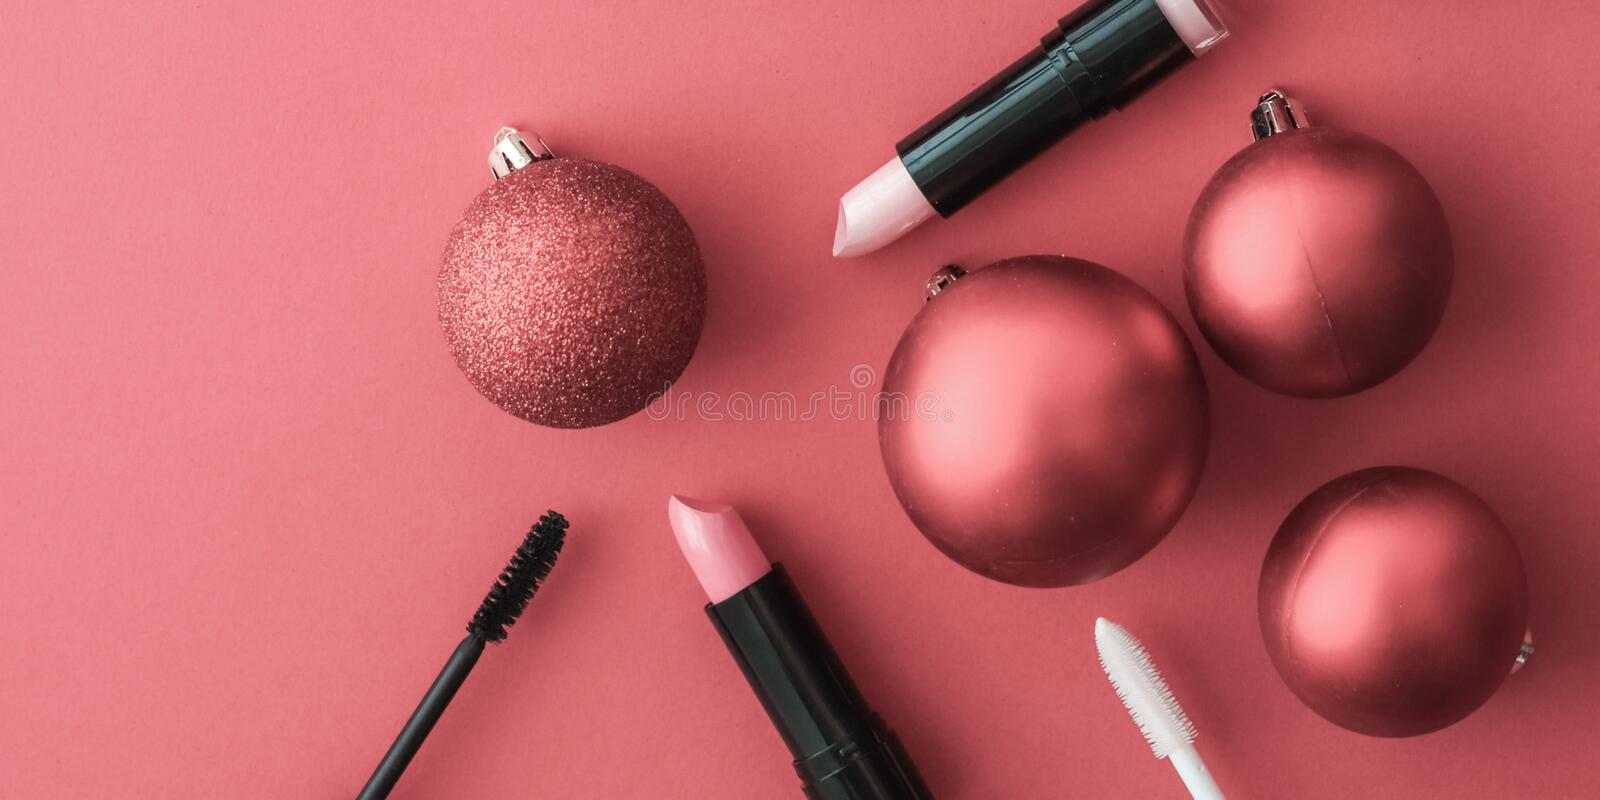 Make-up and cosmetics product set for beauty brand Christmas sale promotion, luxury coral flatlay background as holiday design. Cosmetic branding, fashion blog stock photo